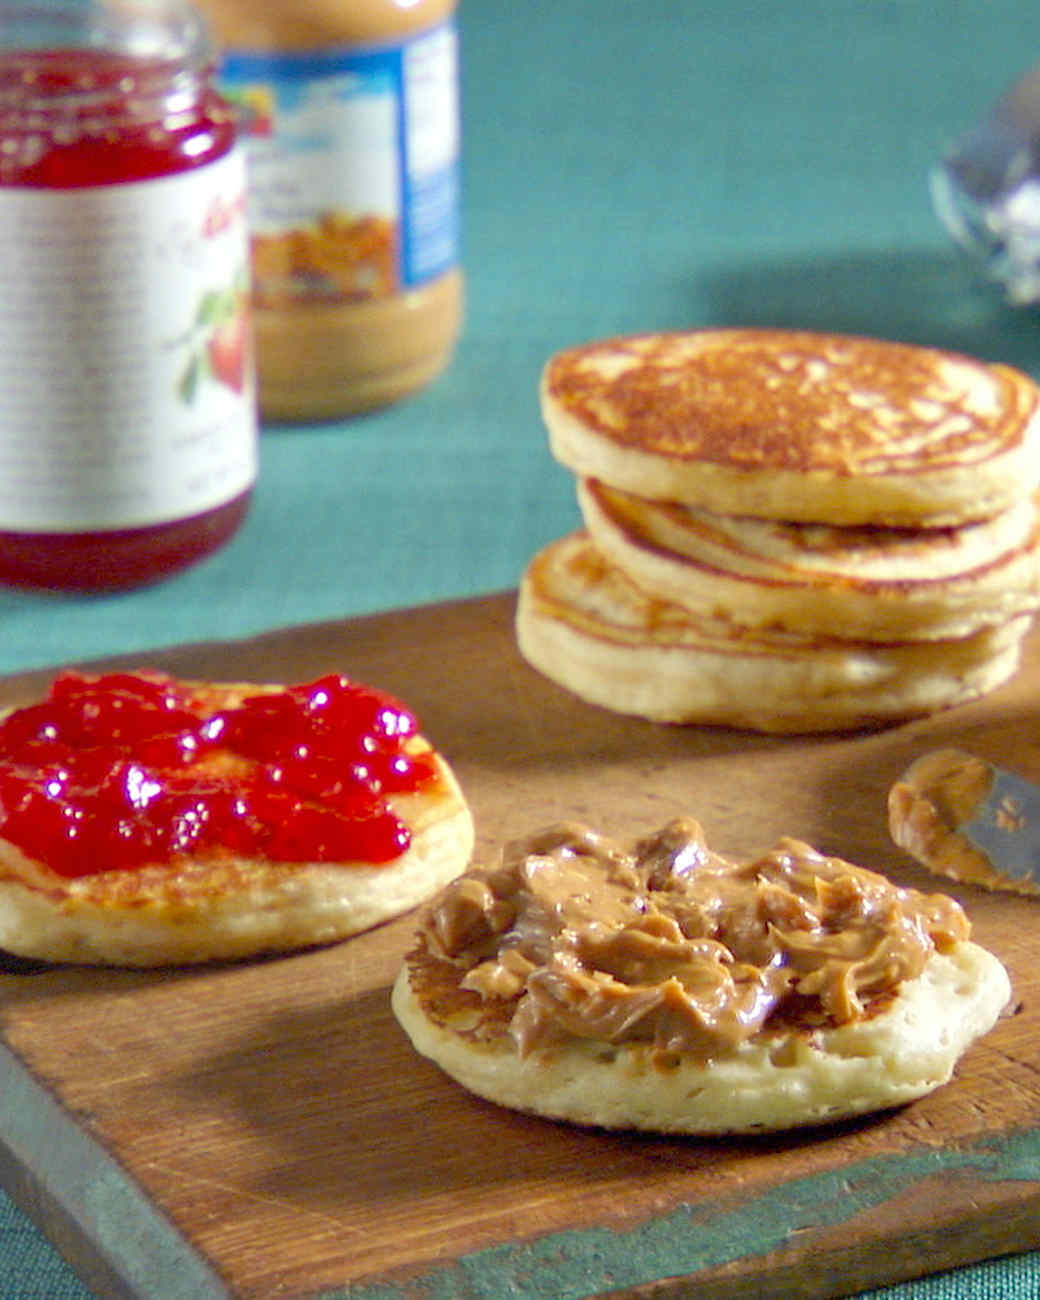 mh_1090_pb_and_j_pancakes.jpg